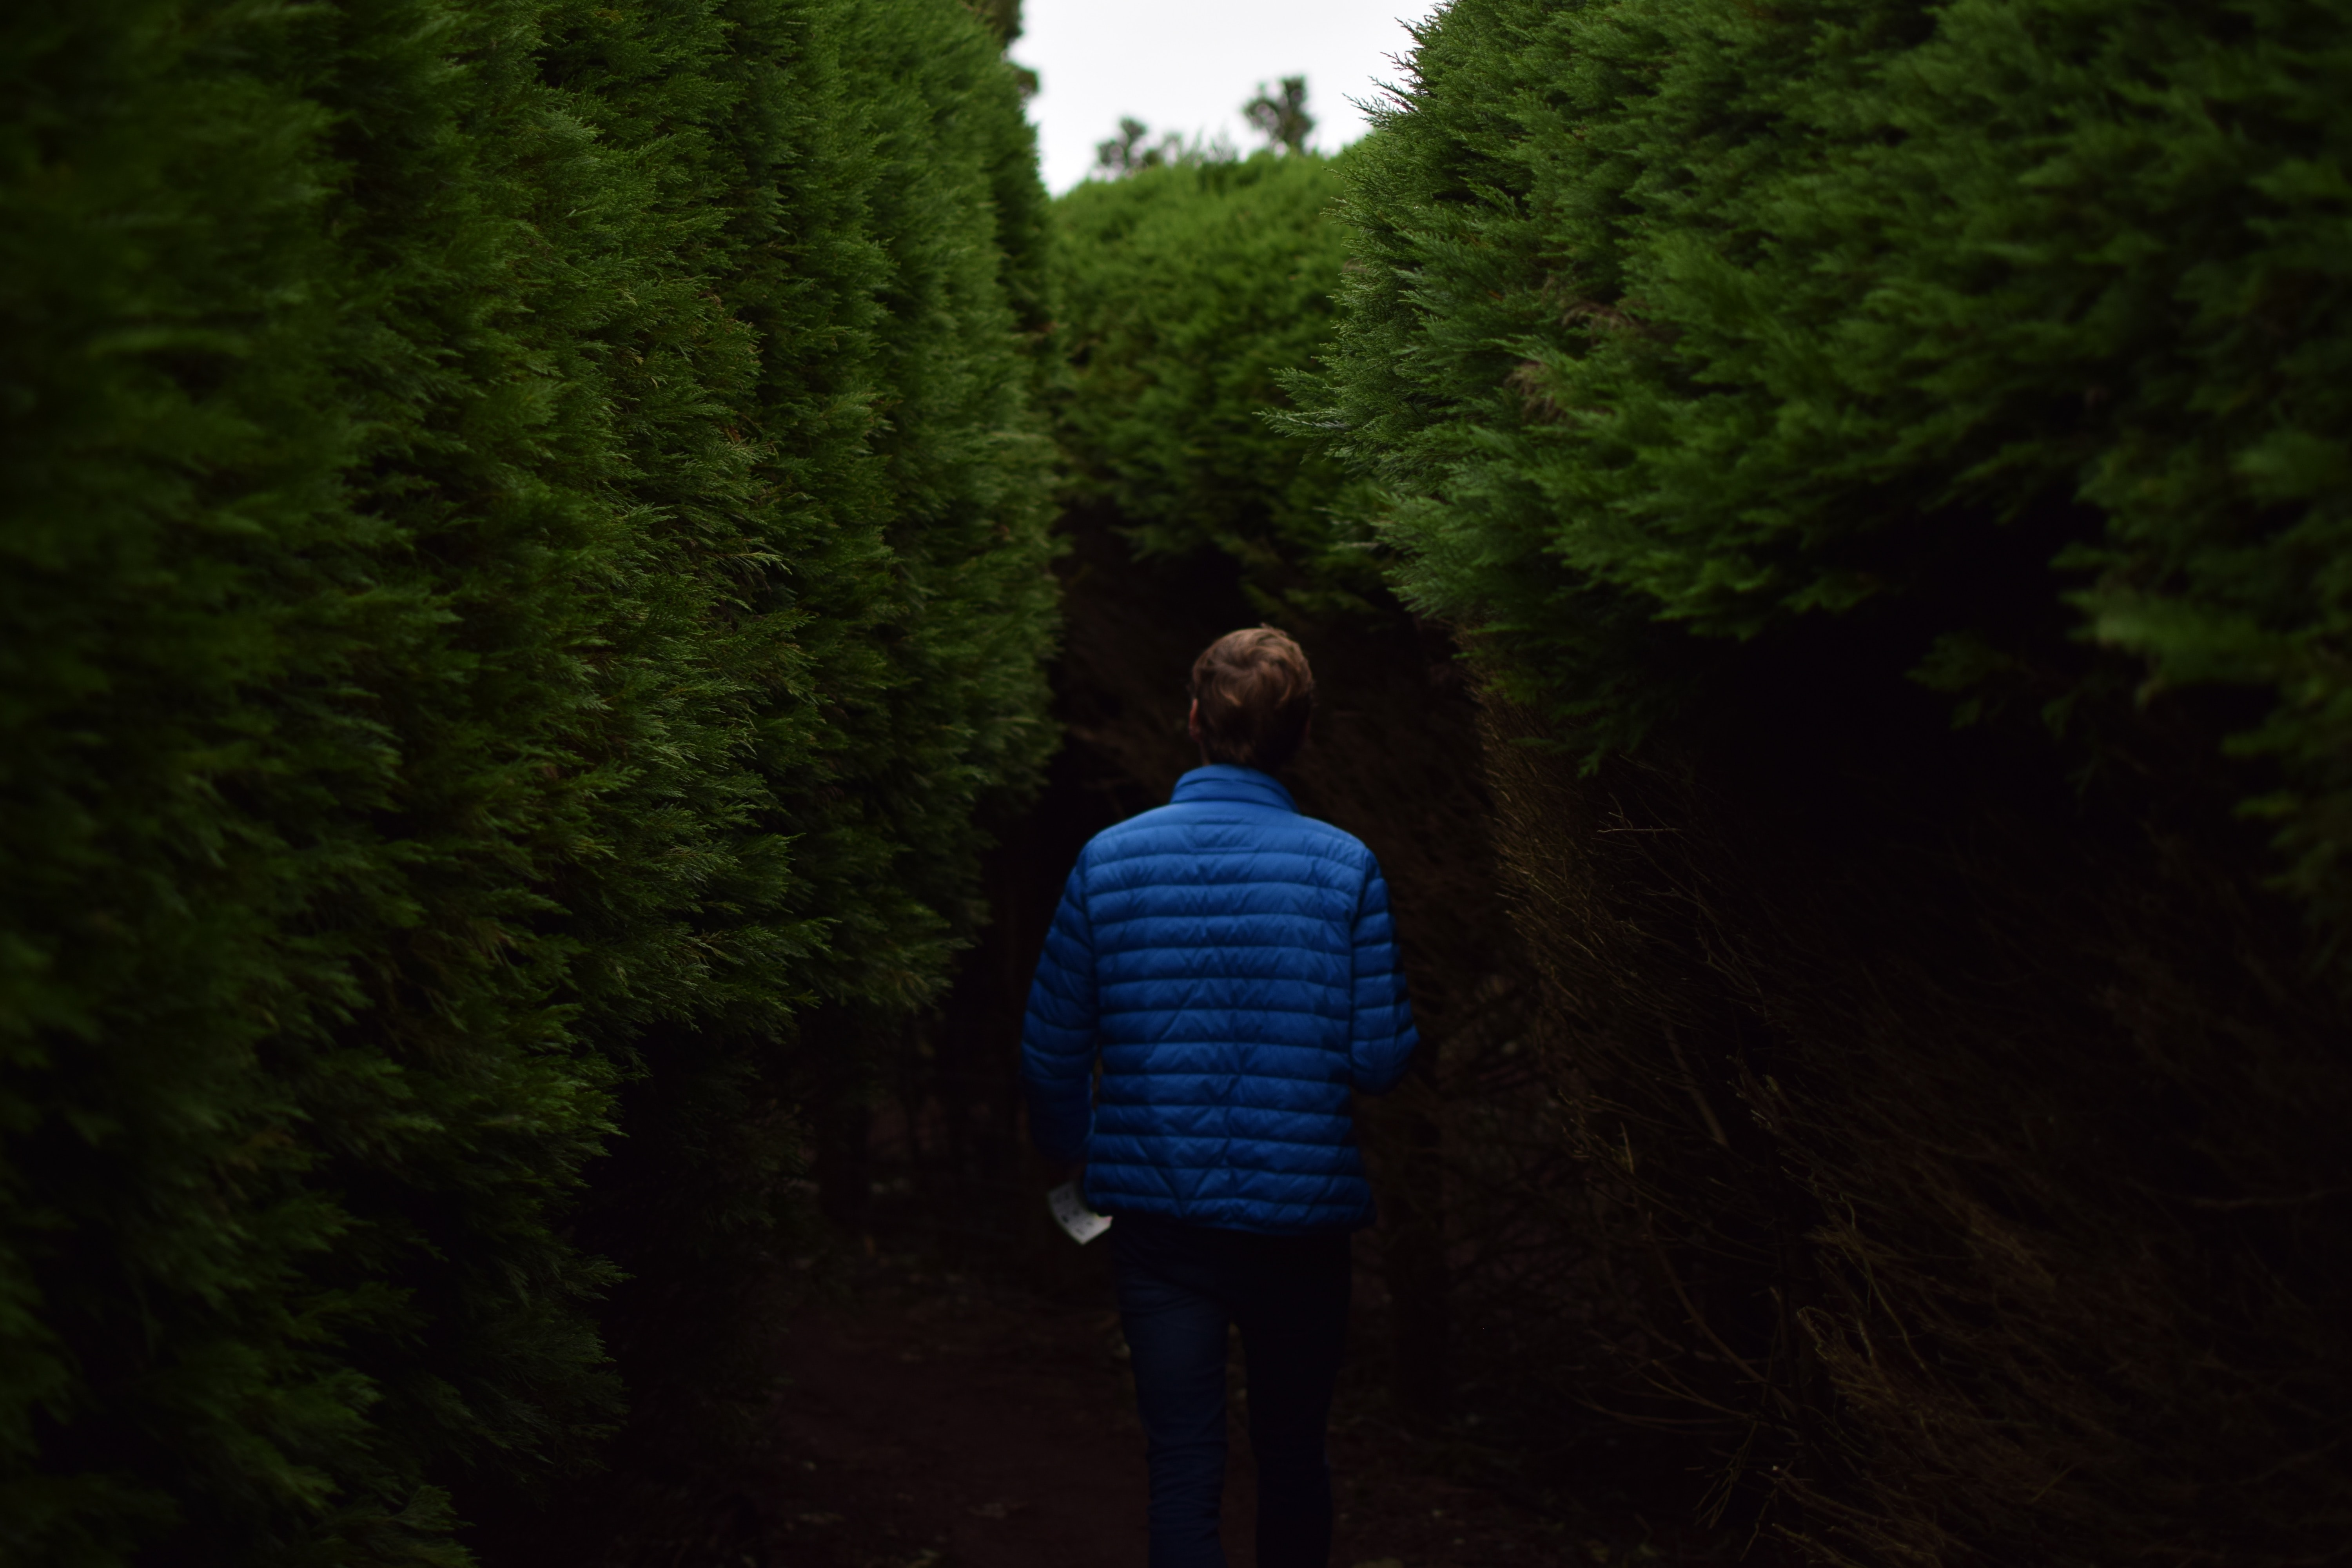 A man with a blue jacket staring into a bush hallway at an outdoor maze